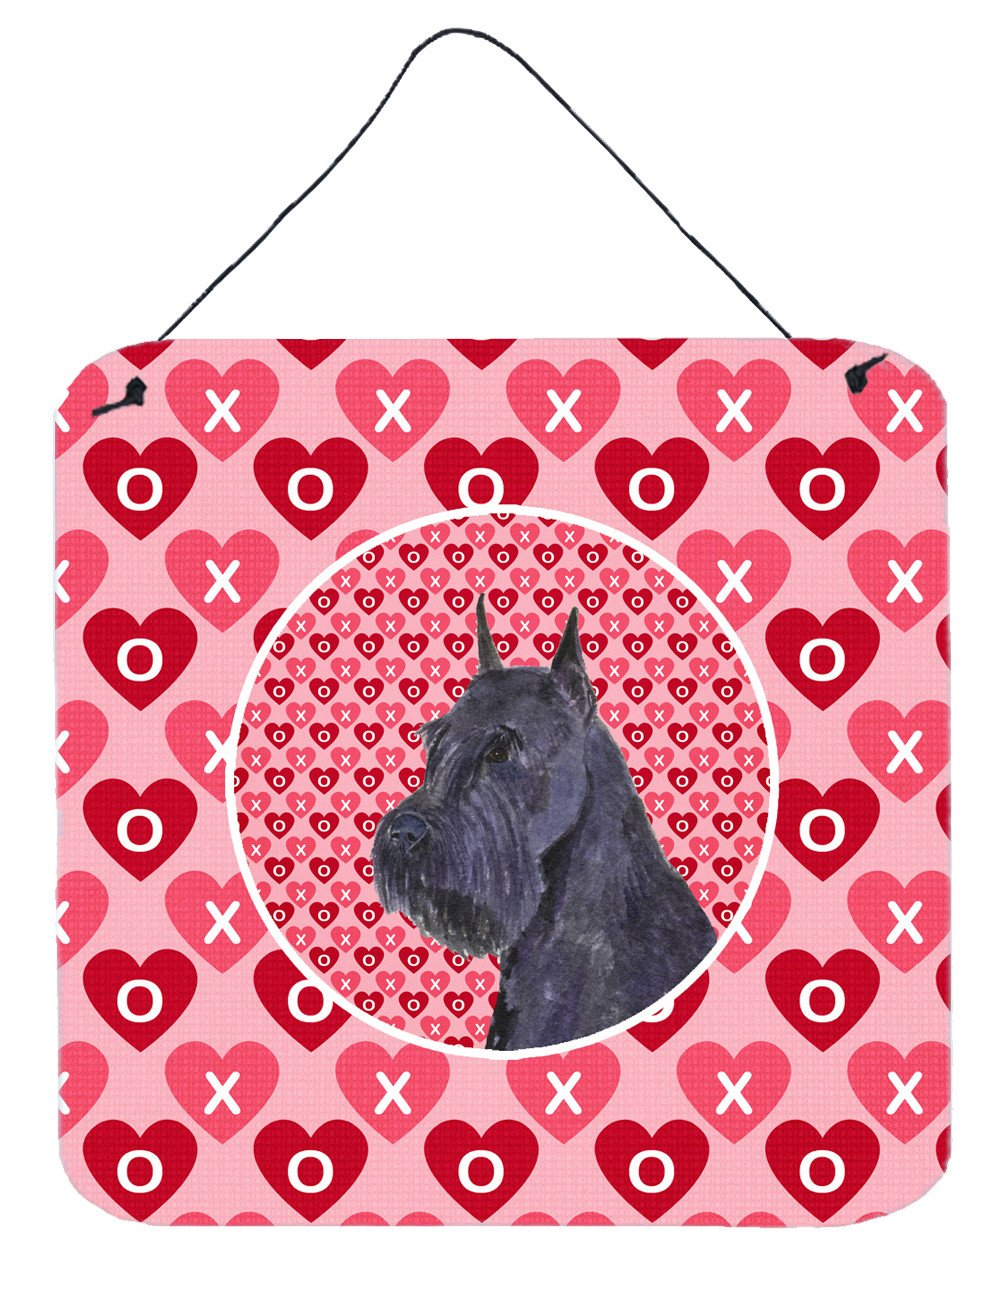 Schnauzer Hearts Love Valentine's Day Wall or Door Hanging Prints by Caroline's Treasures